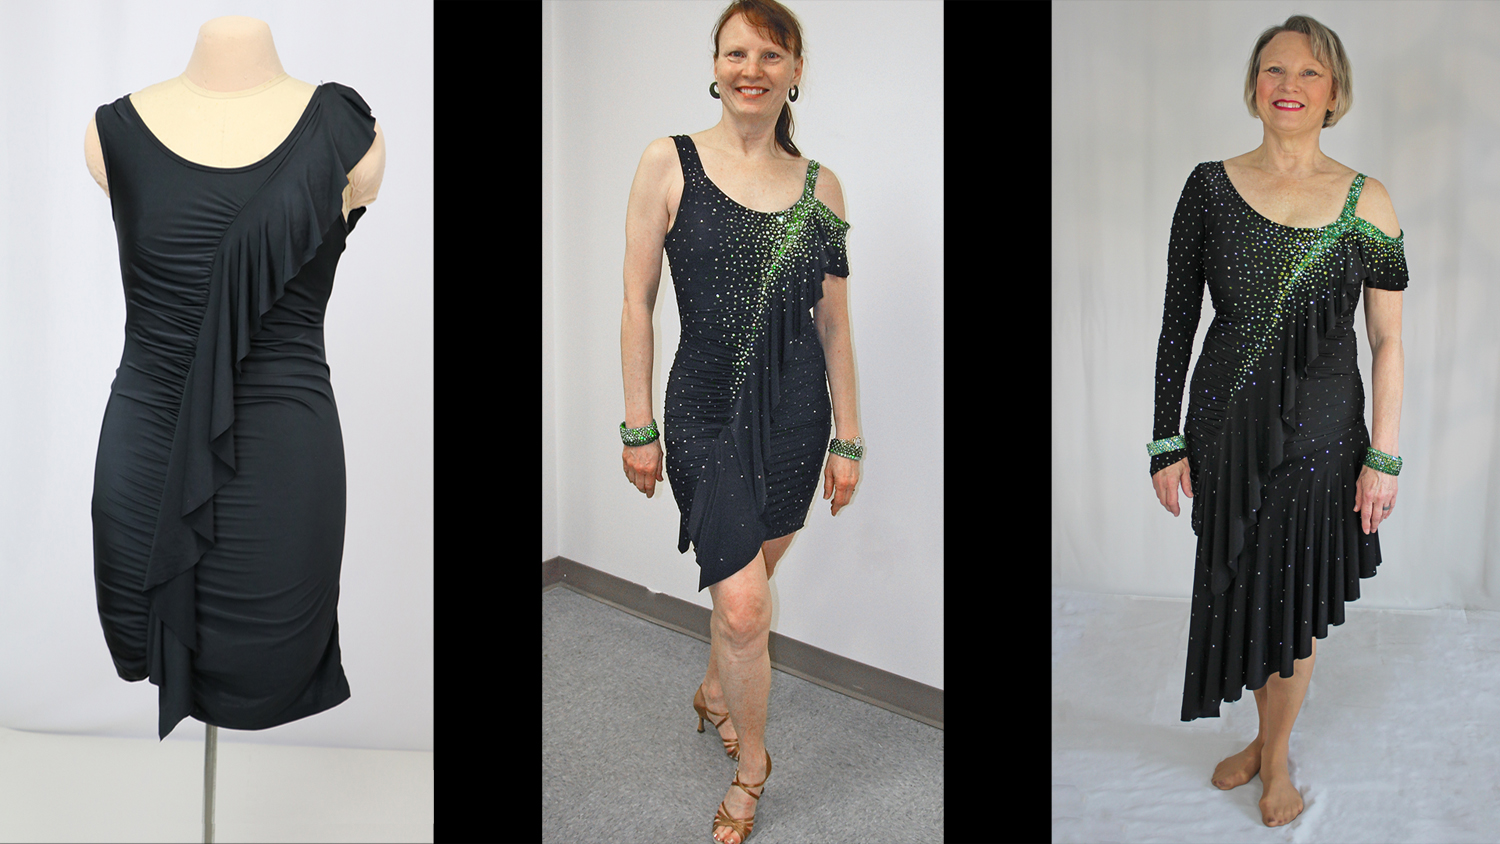 Three Looks For A Latin Or Skate Dress